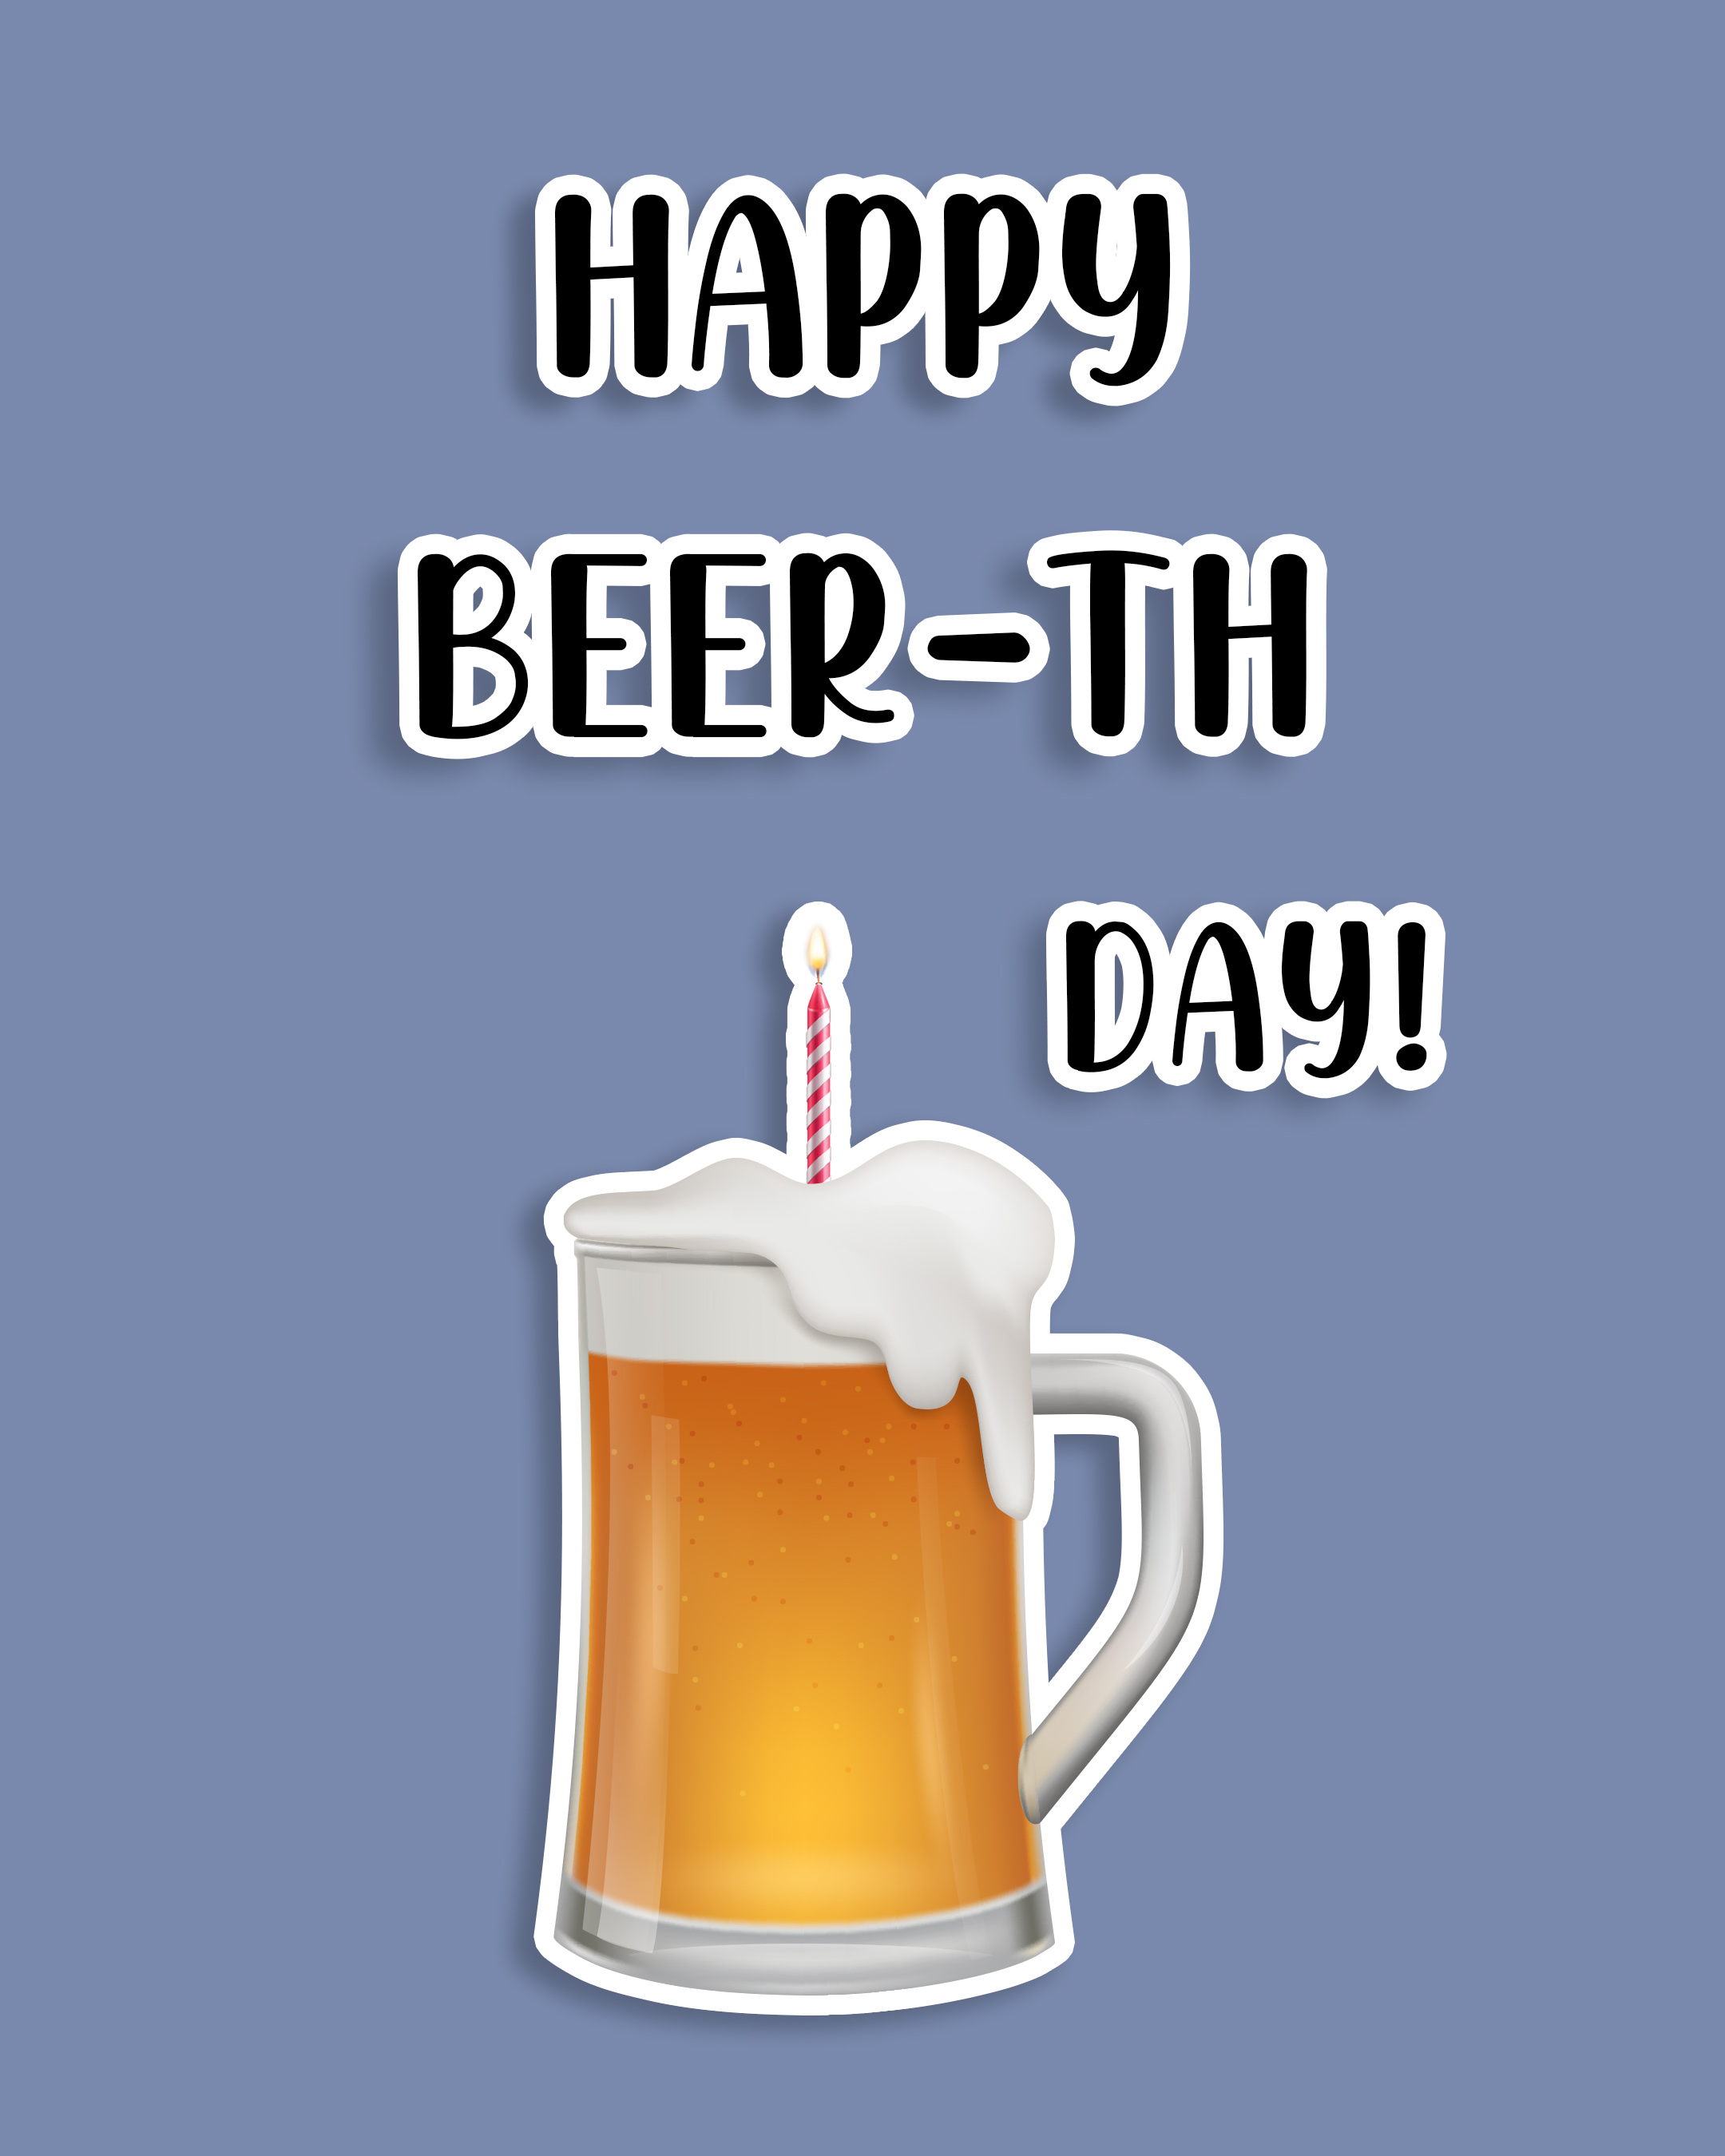 Free Funny Happy Birthday Image For Him (Man) With Beer - birthdayimg.com